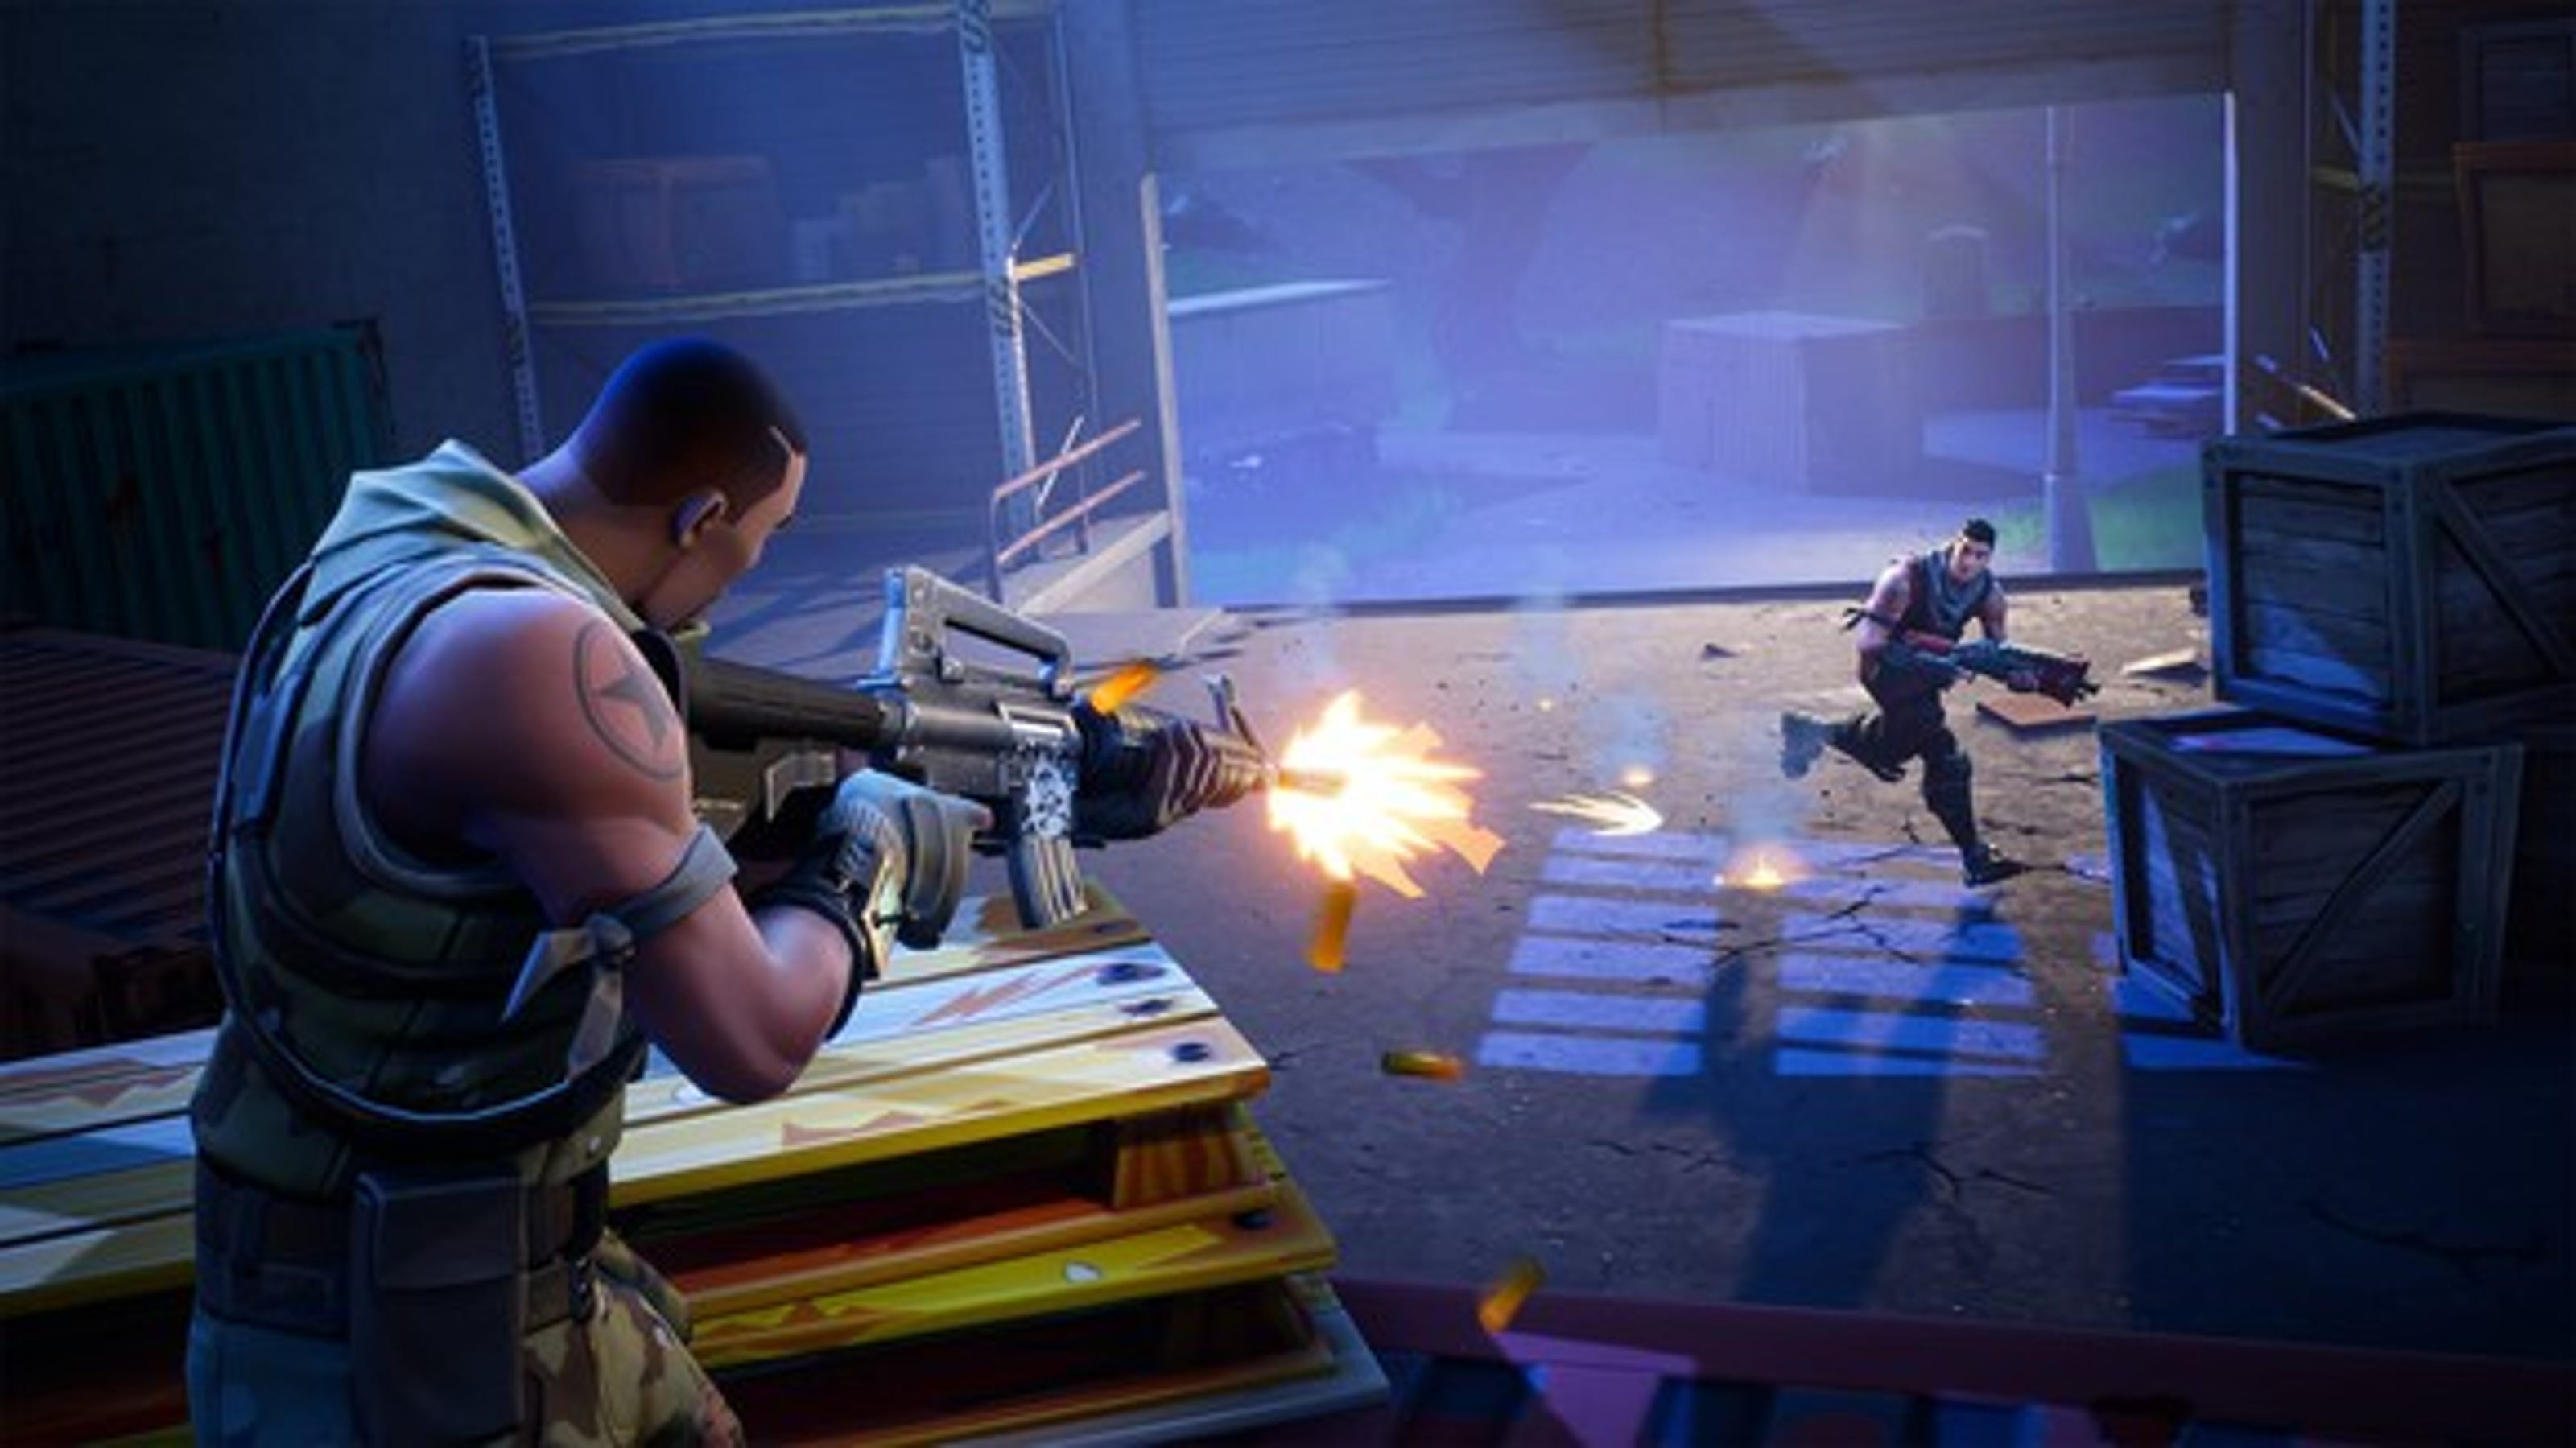 Man Playing Fortnite Charged With Threatening 11 Year Old After Loss